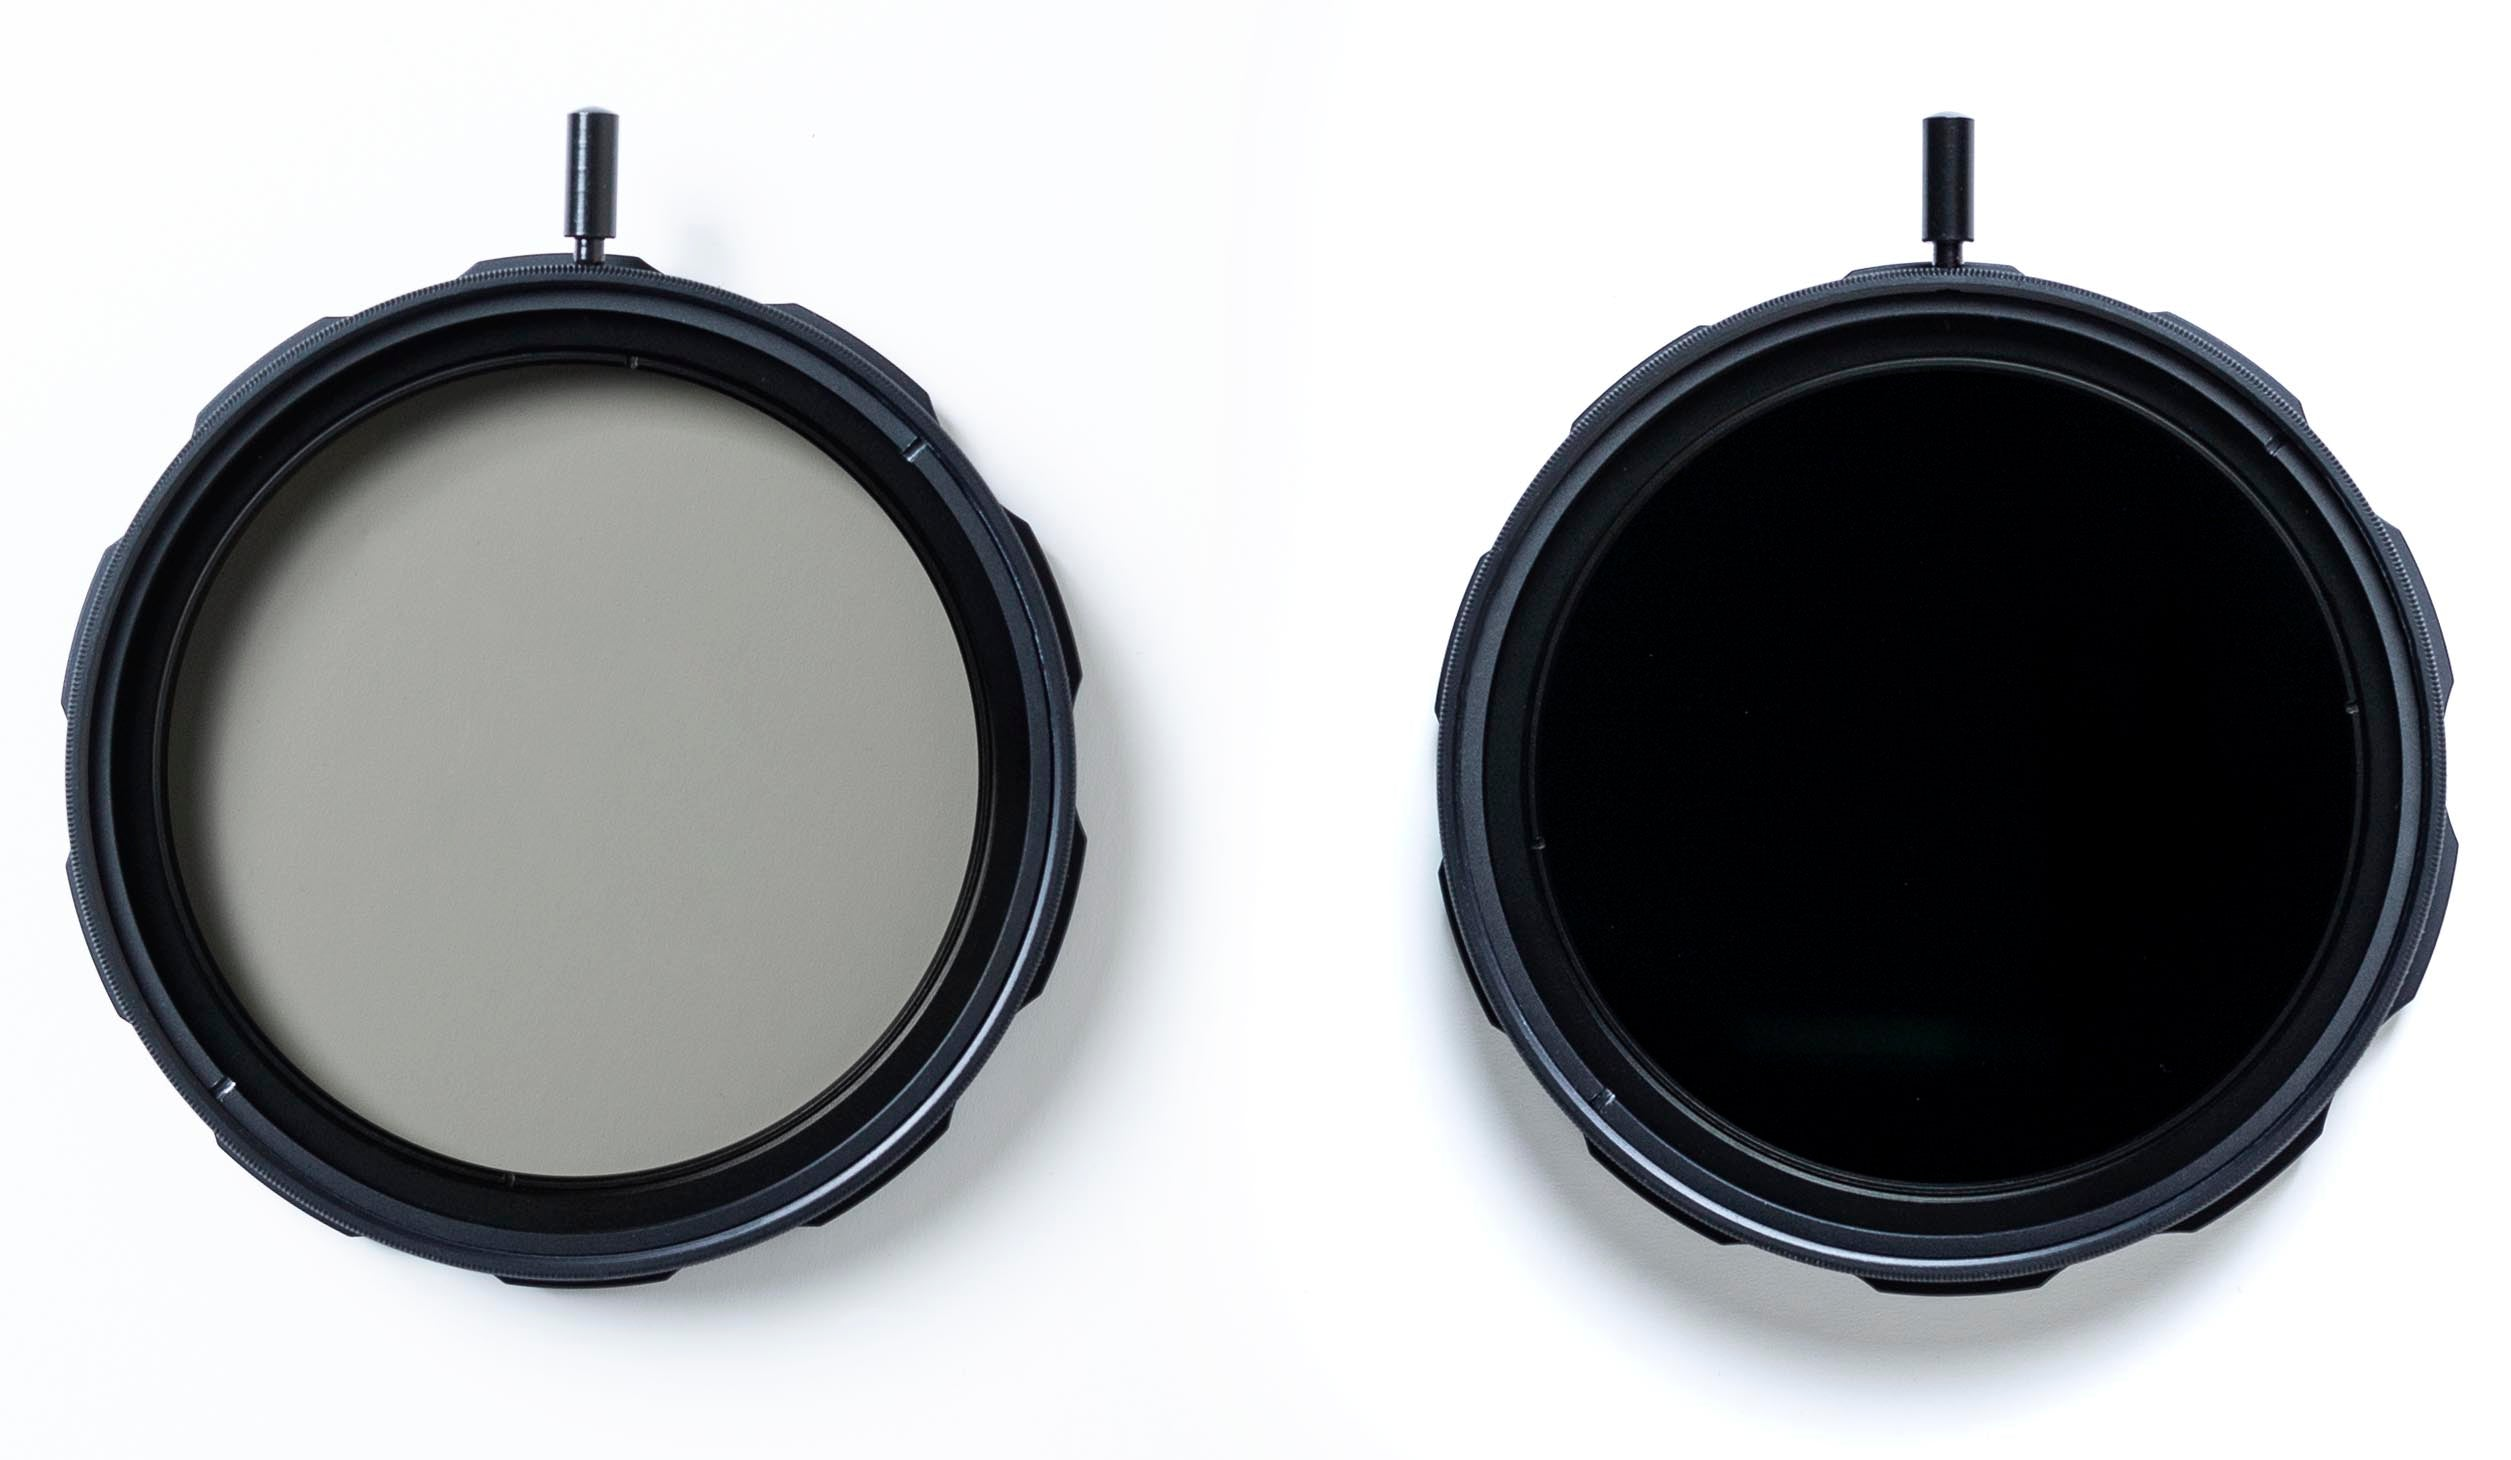 Two Formatt Hitech round threaded Variable ND filters side by side. One is set at minimum light reduction and is see through, the other is set to maximum light reduction and completely opaque to the naked eye